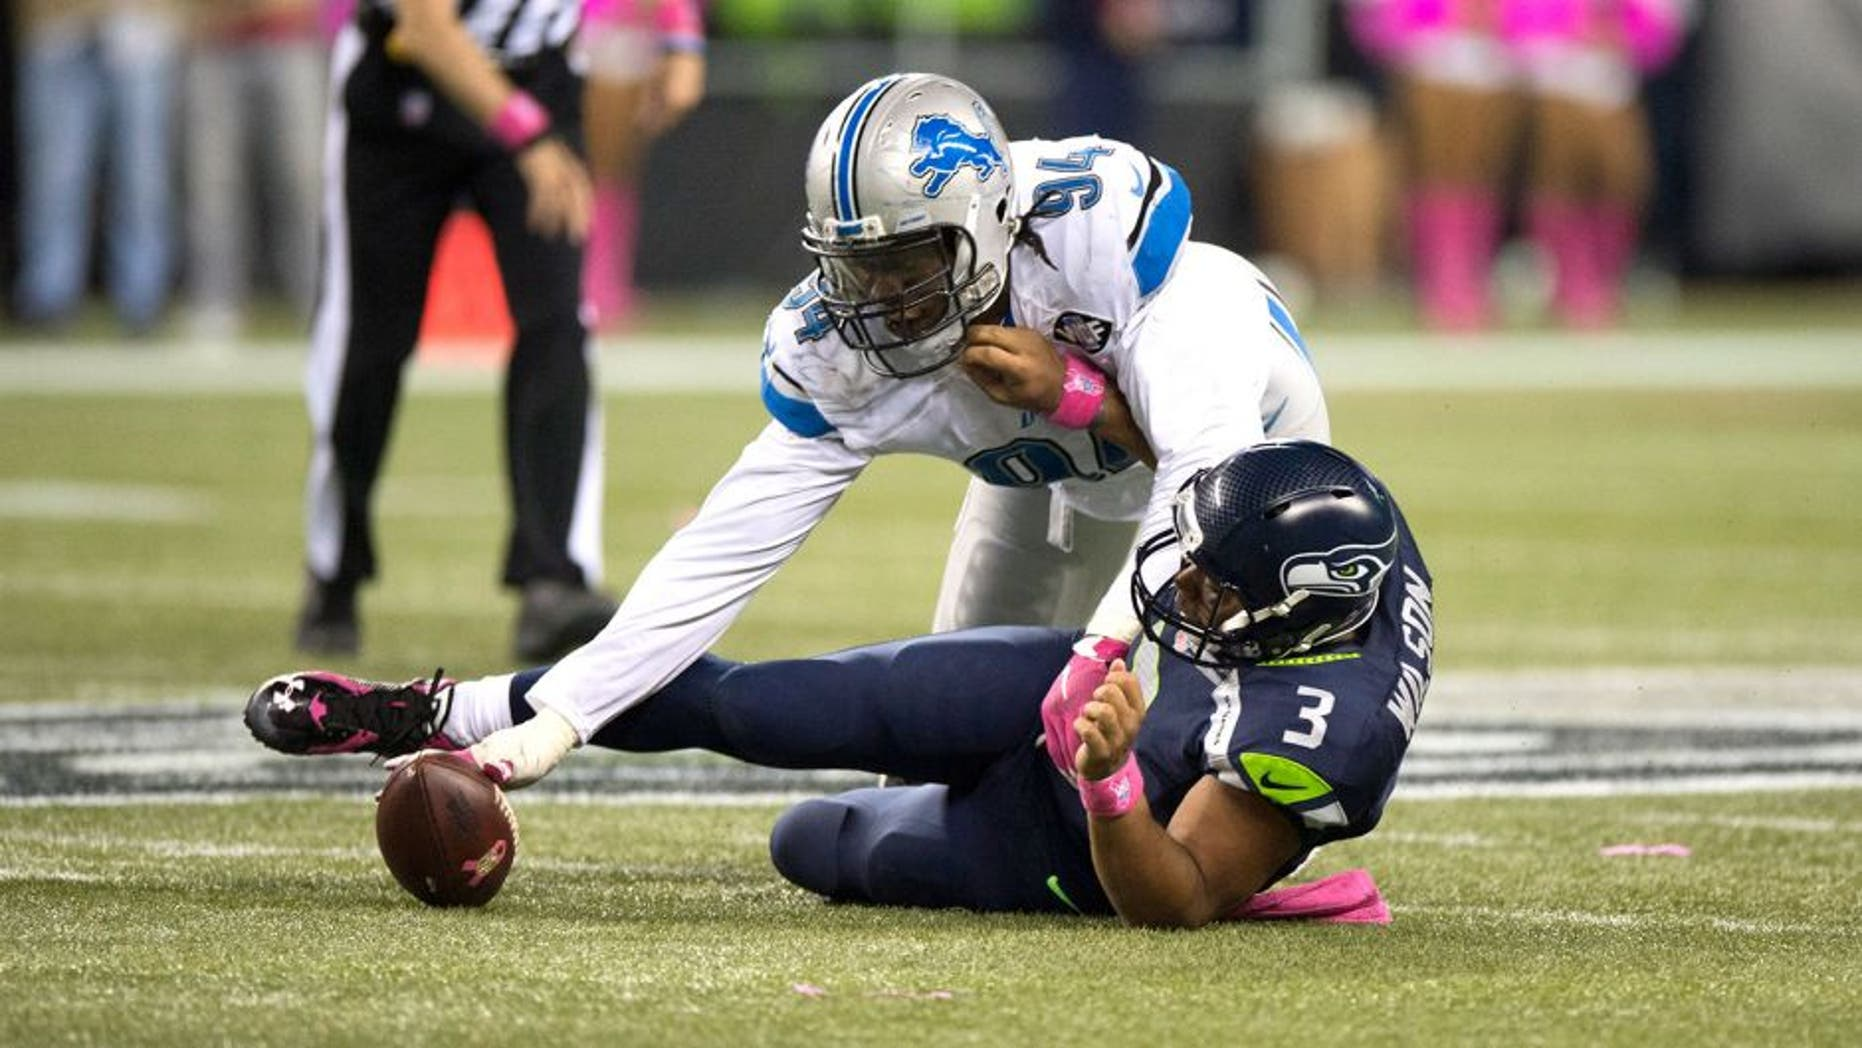 Oct 5, 2015; Seattle, WA, USA; Detroit Lions defensive end Ezekiel Ansah (94) recovers a fumble after sacking Seattle Seahawks quarterback Russell Wilson (3) during the fourth quarter at CenturyLink Field. The Seahawks won 13-10. Mandatory Credit: Troy Wayrynen-USA TODAY Sports